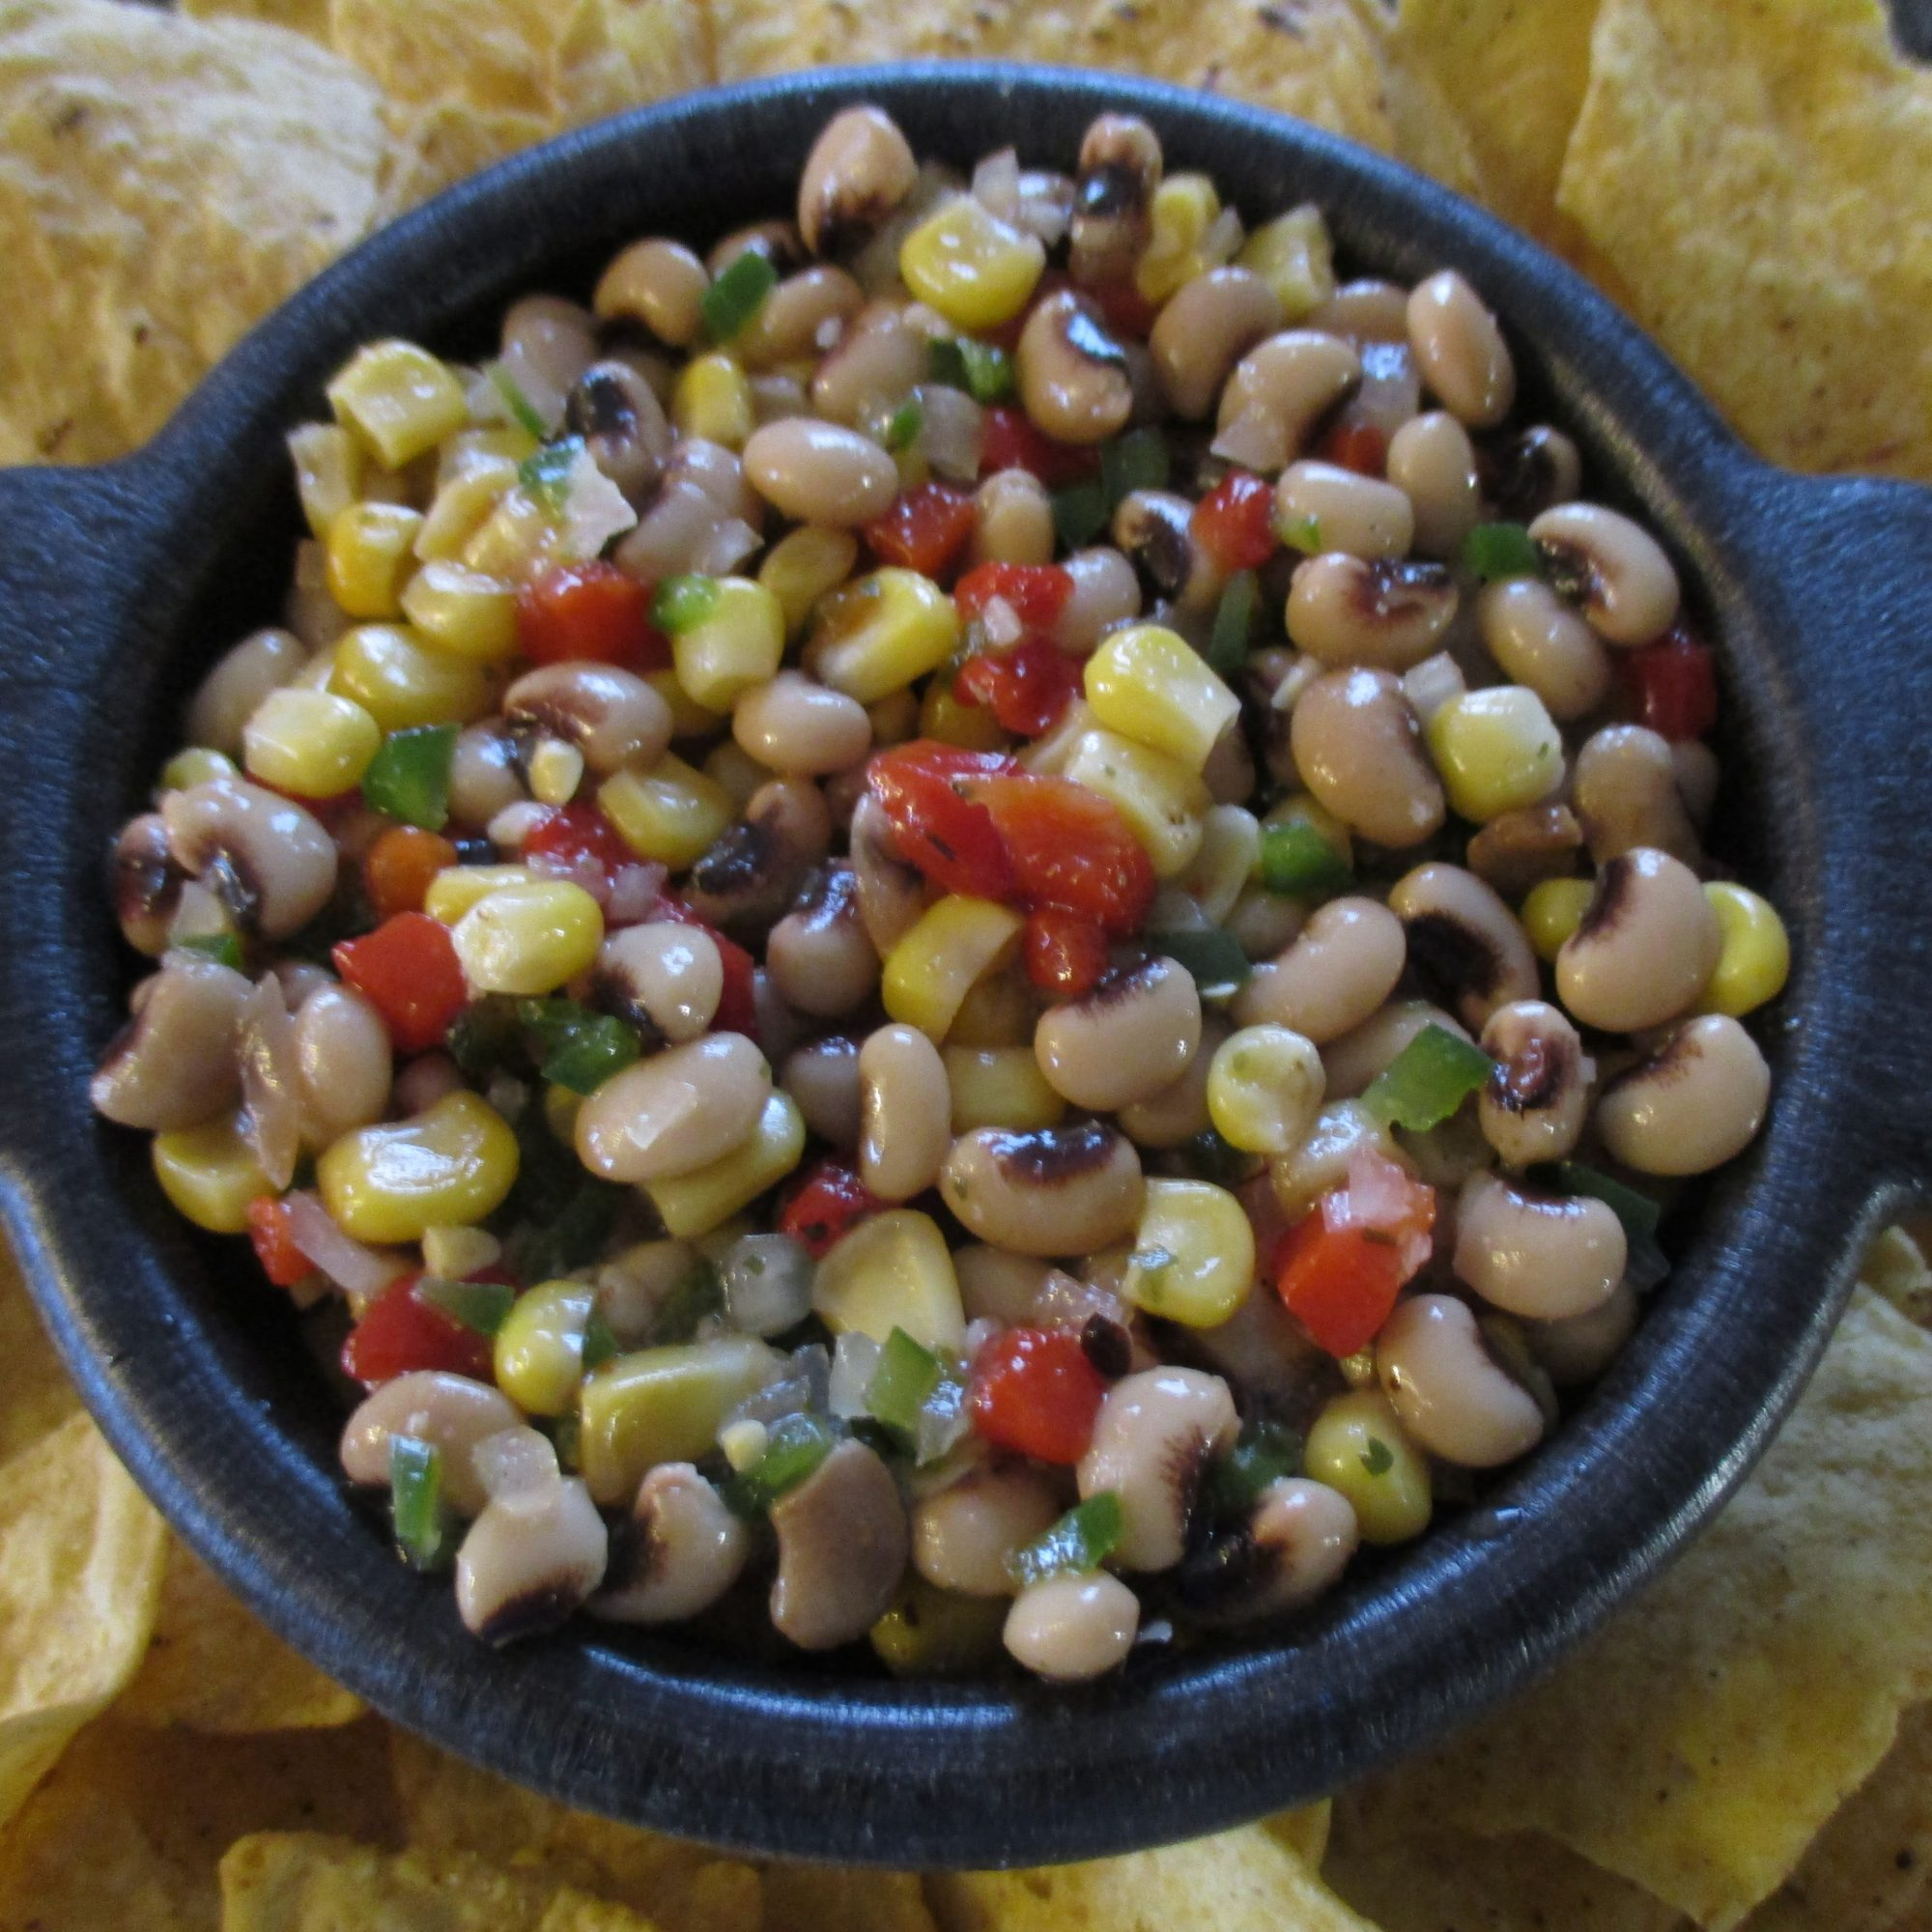 Cold Black-Eyed Peas and Corn with tortilla chips